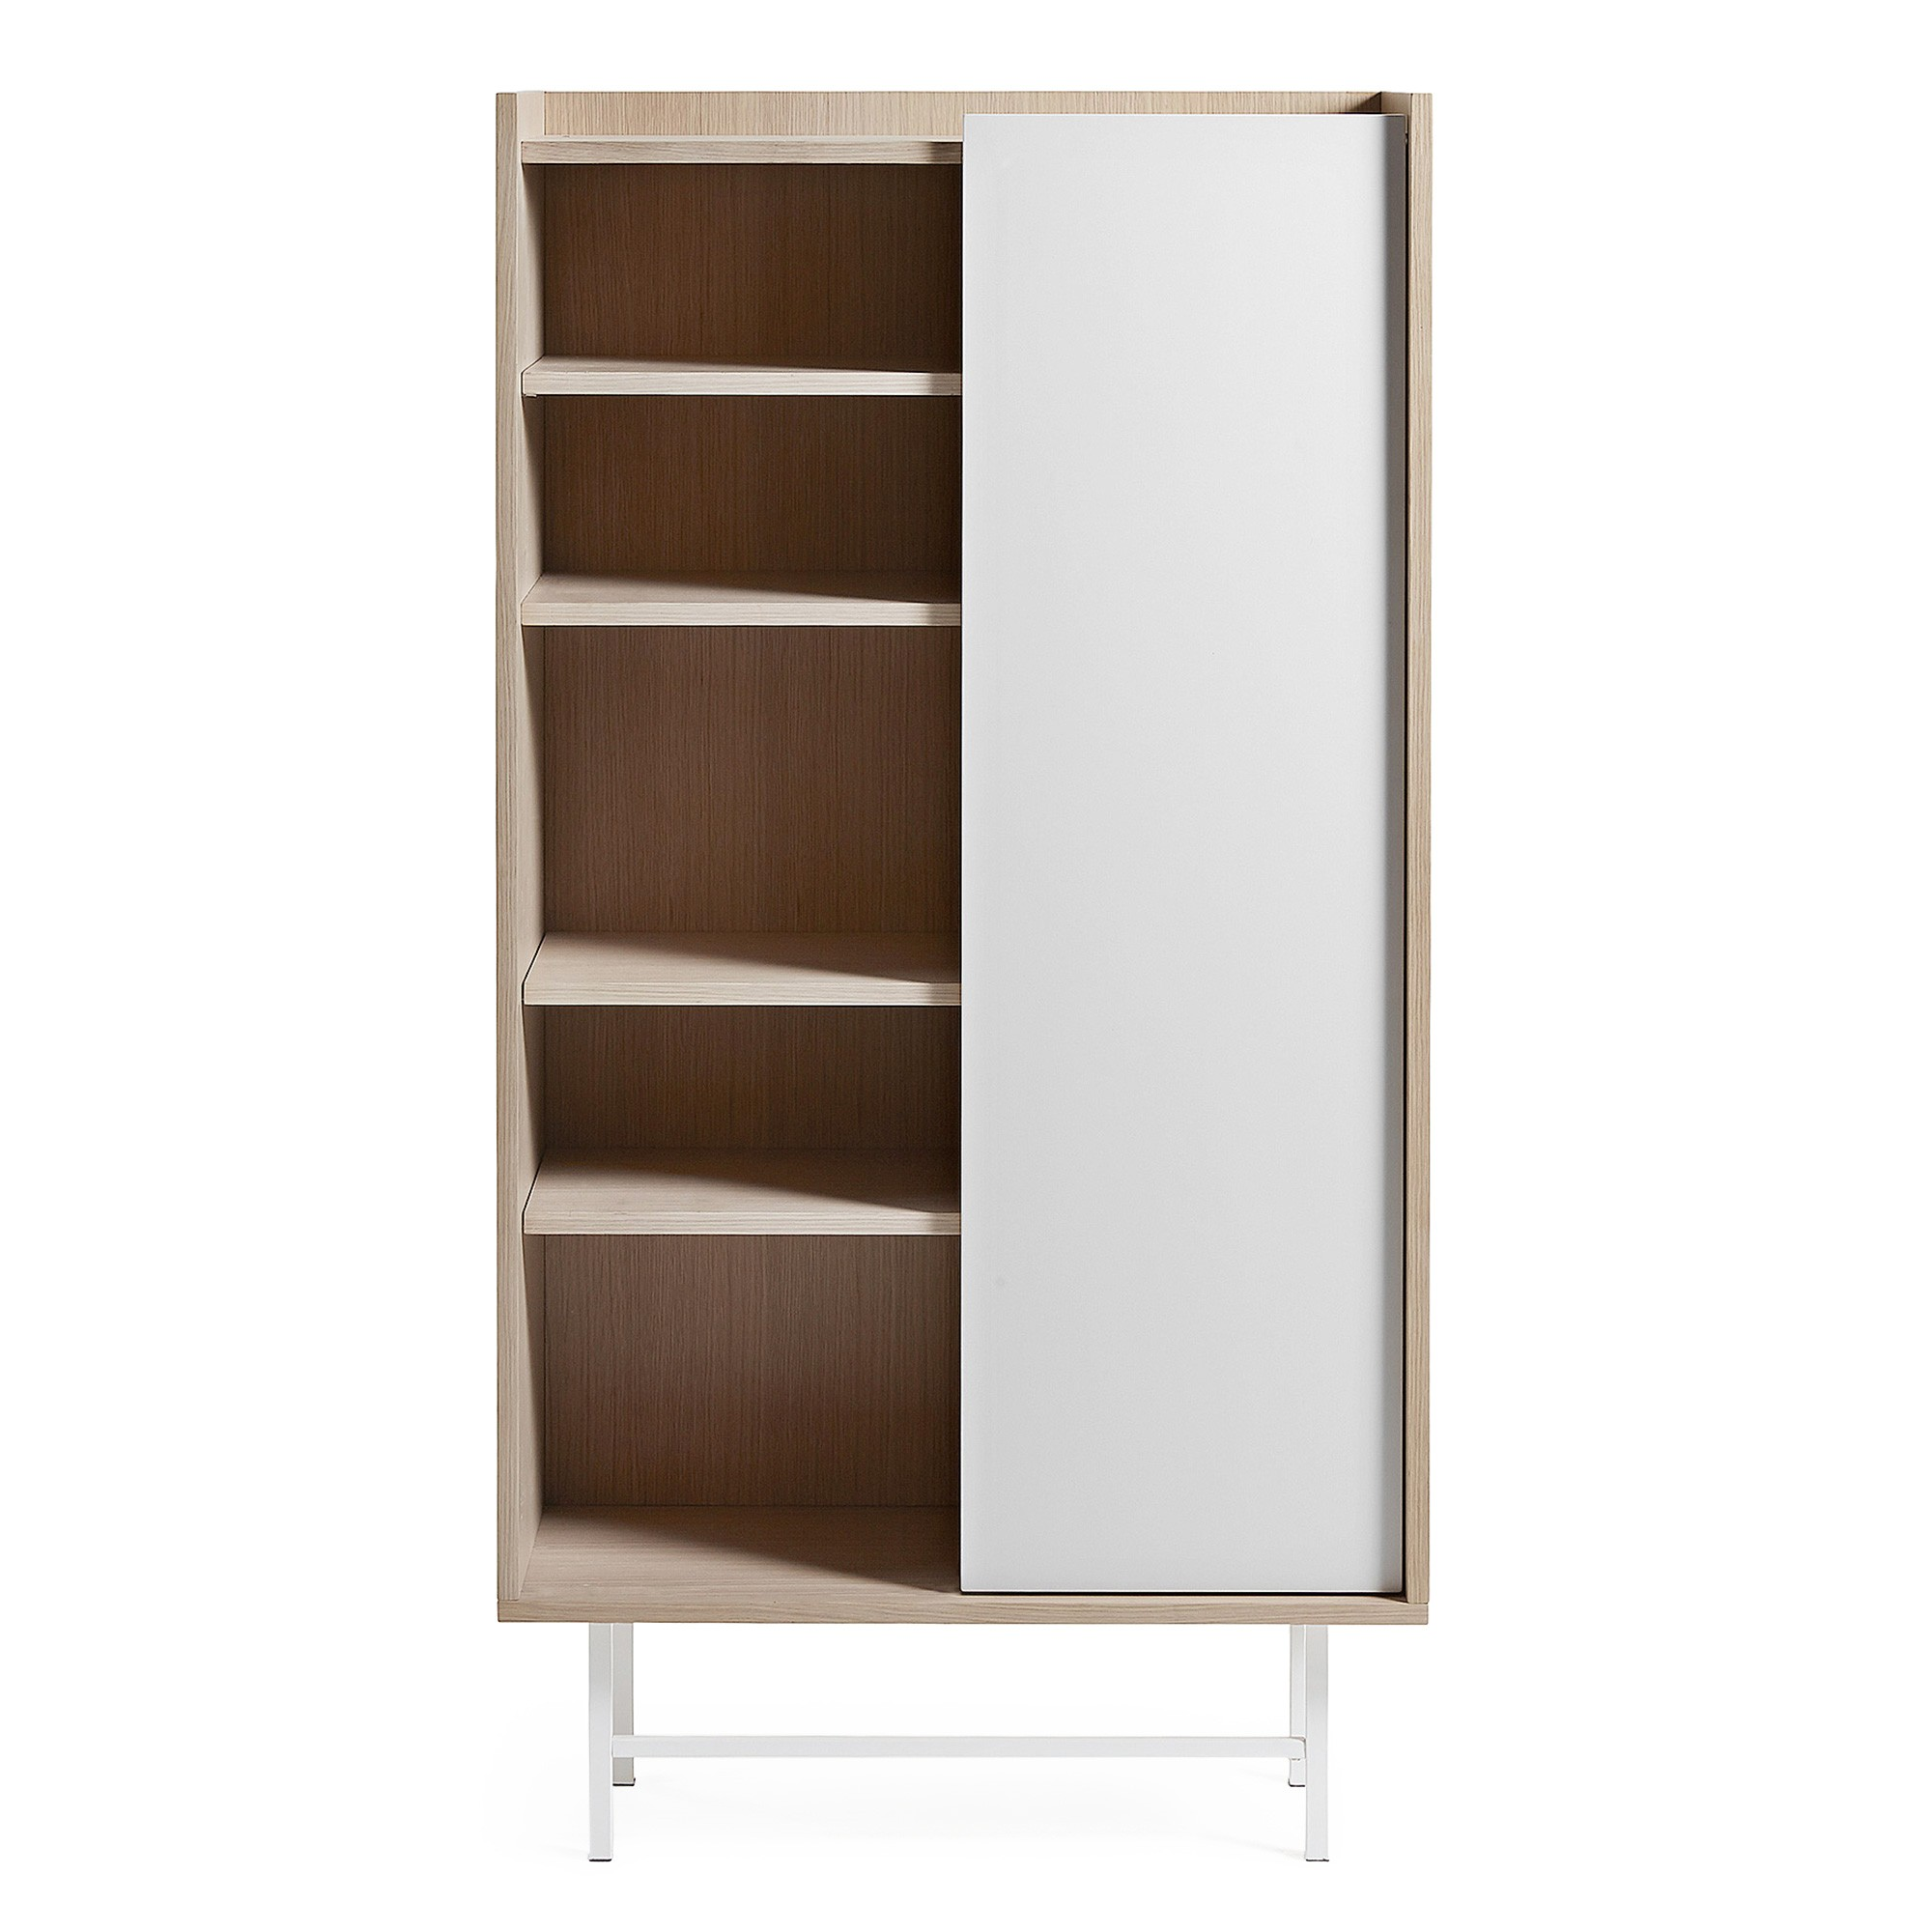 Buxton Sliding Door Bookcase / Display Cabinet